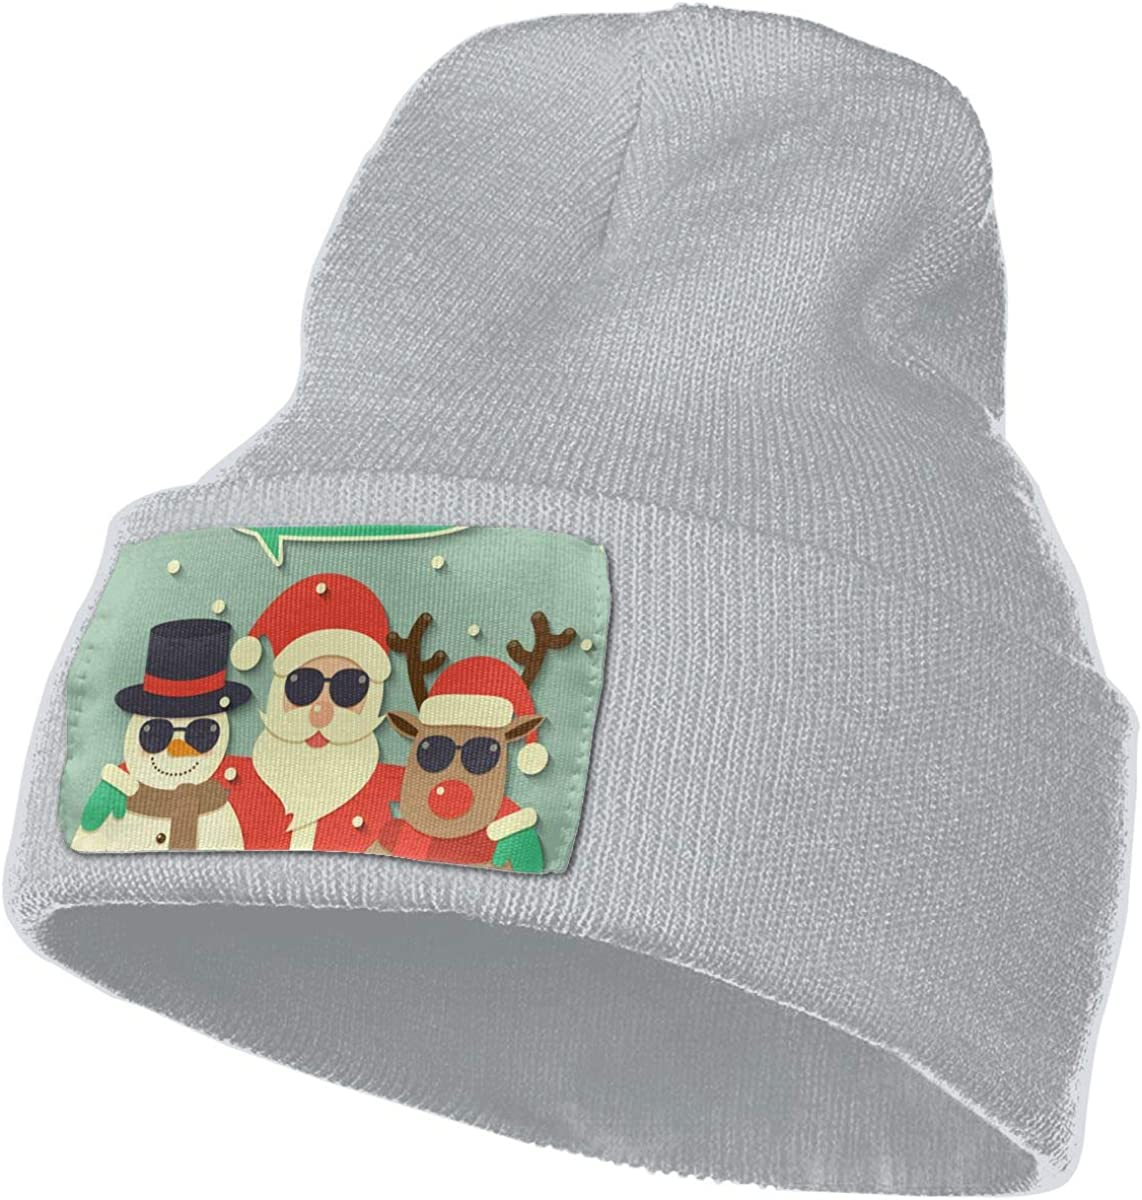 JimHappy Merry Christmas Santa Hat for Men and Women Winter Warm Hats Knit Slouchy Thick Skull Cap Black